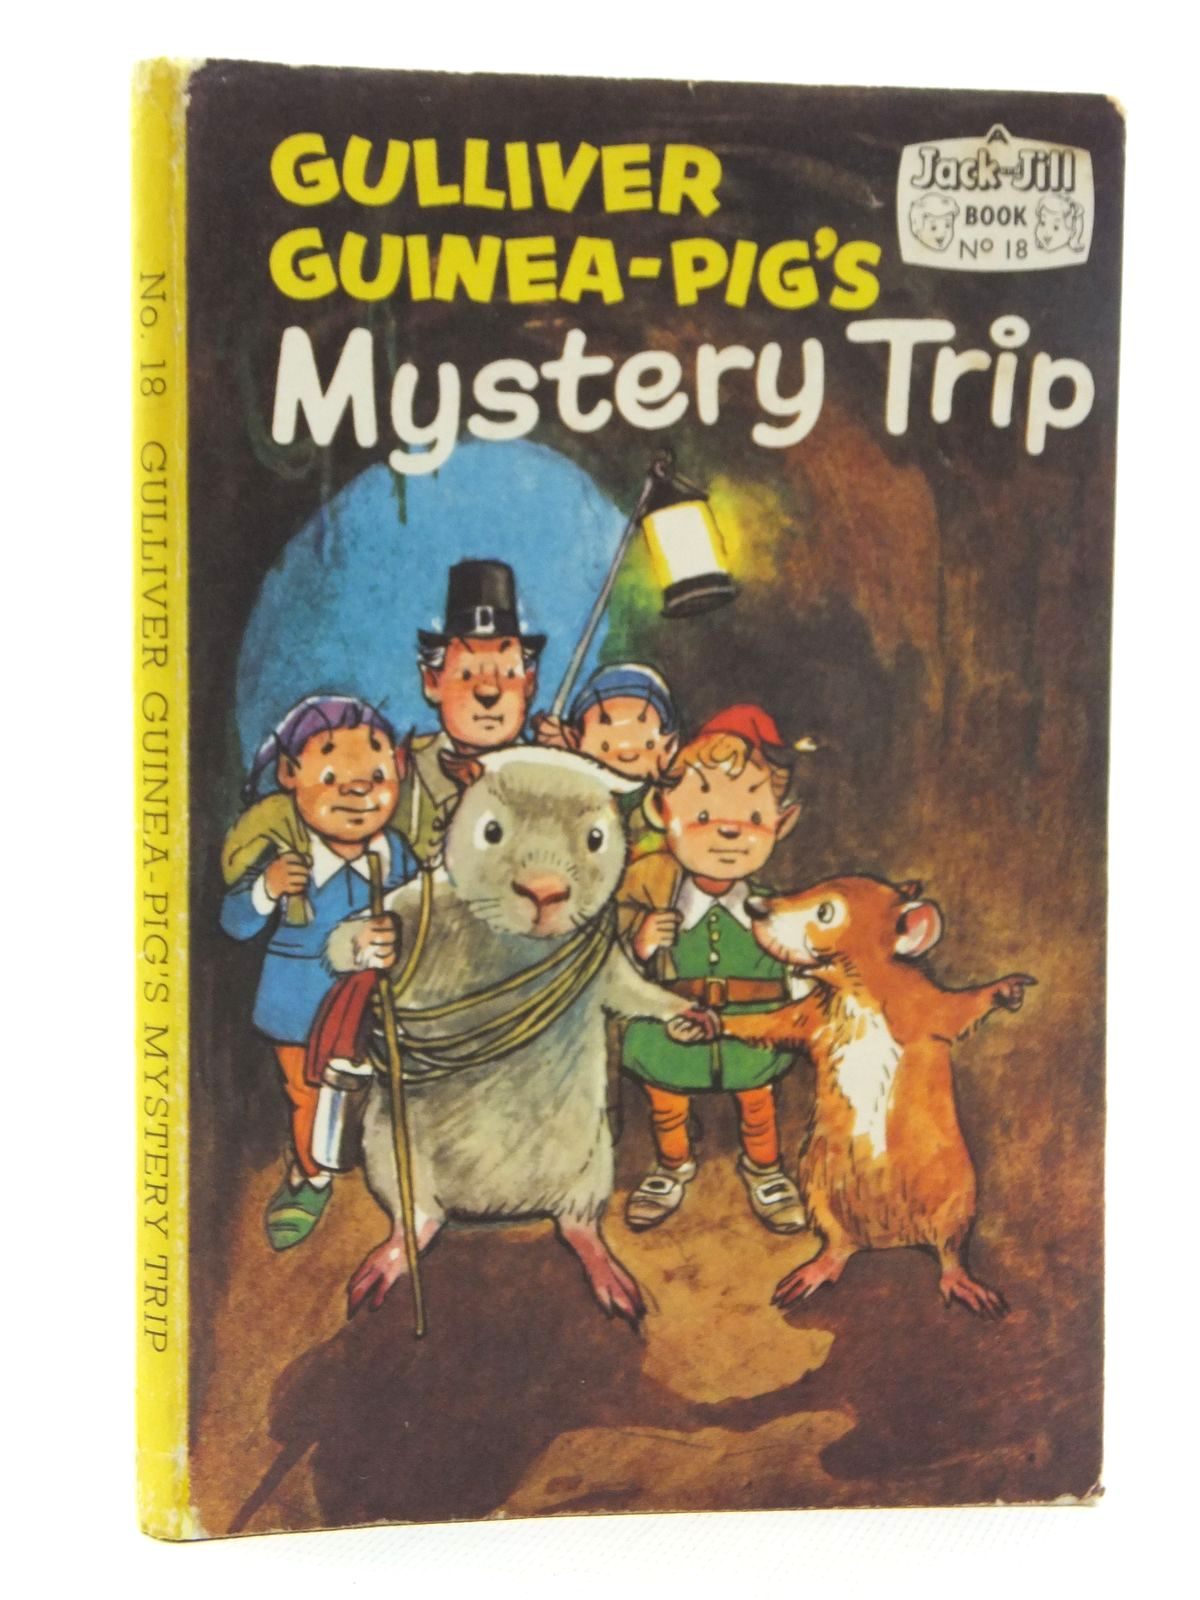 Photo of GULLIVER GUINEA-PIG'S MYSTERY TRIP published by Fleetway Publications Ltd. (STOCK CODE: 1317104)  for sale by Stella & Rose's Books